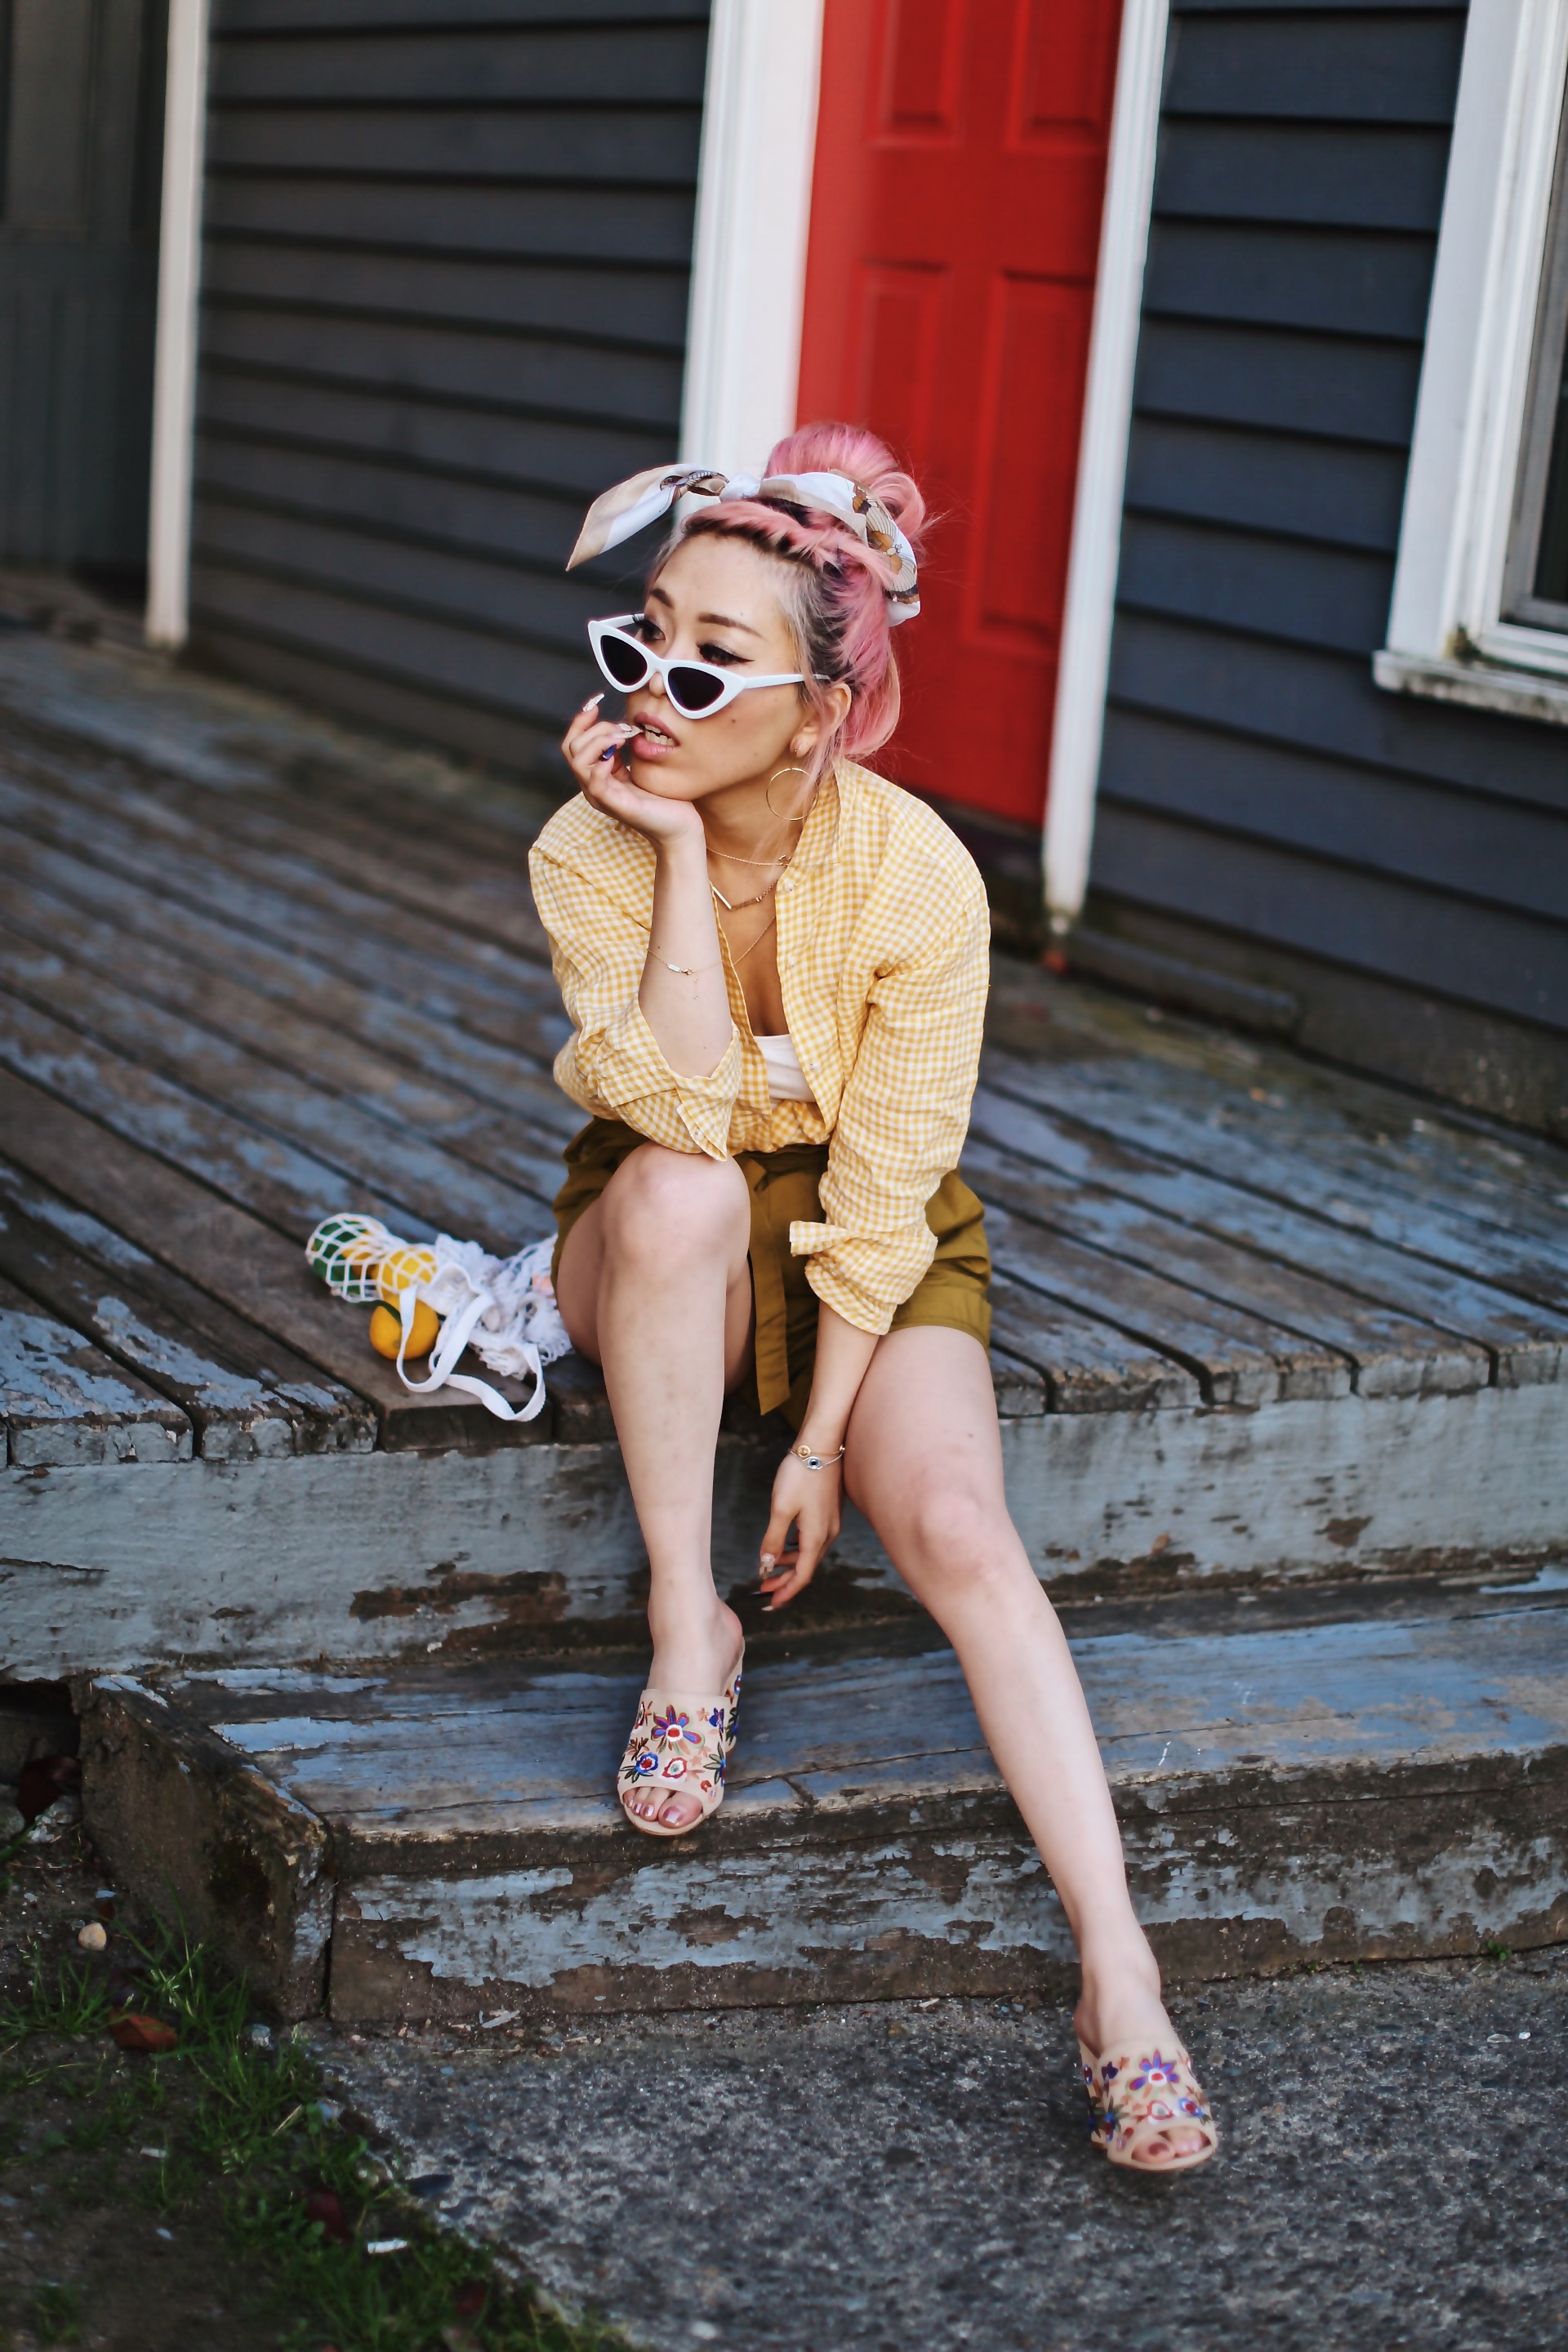 Uniqlo yellow Linen gingham shirt-Uniqlo olive paperbag shorts-Uniqlo Airism bratop-White Cat eye sunglasses ZERO UV- Pipe + Row White net bag-Vintage scarf bun hairstyle-ALDO Embroidered Nude mules-Aika's Love Closet-seattle fashion style blogger-Japanese-pink hair-smiling-spring fashion 4